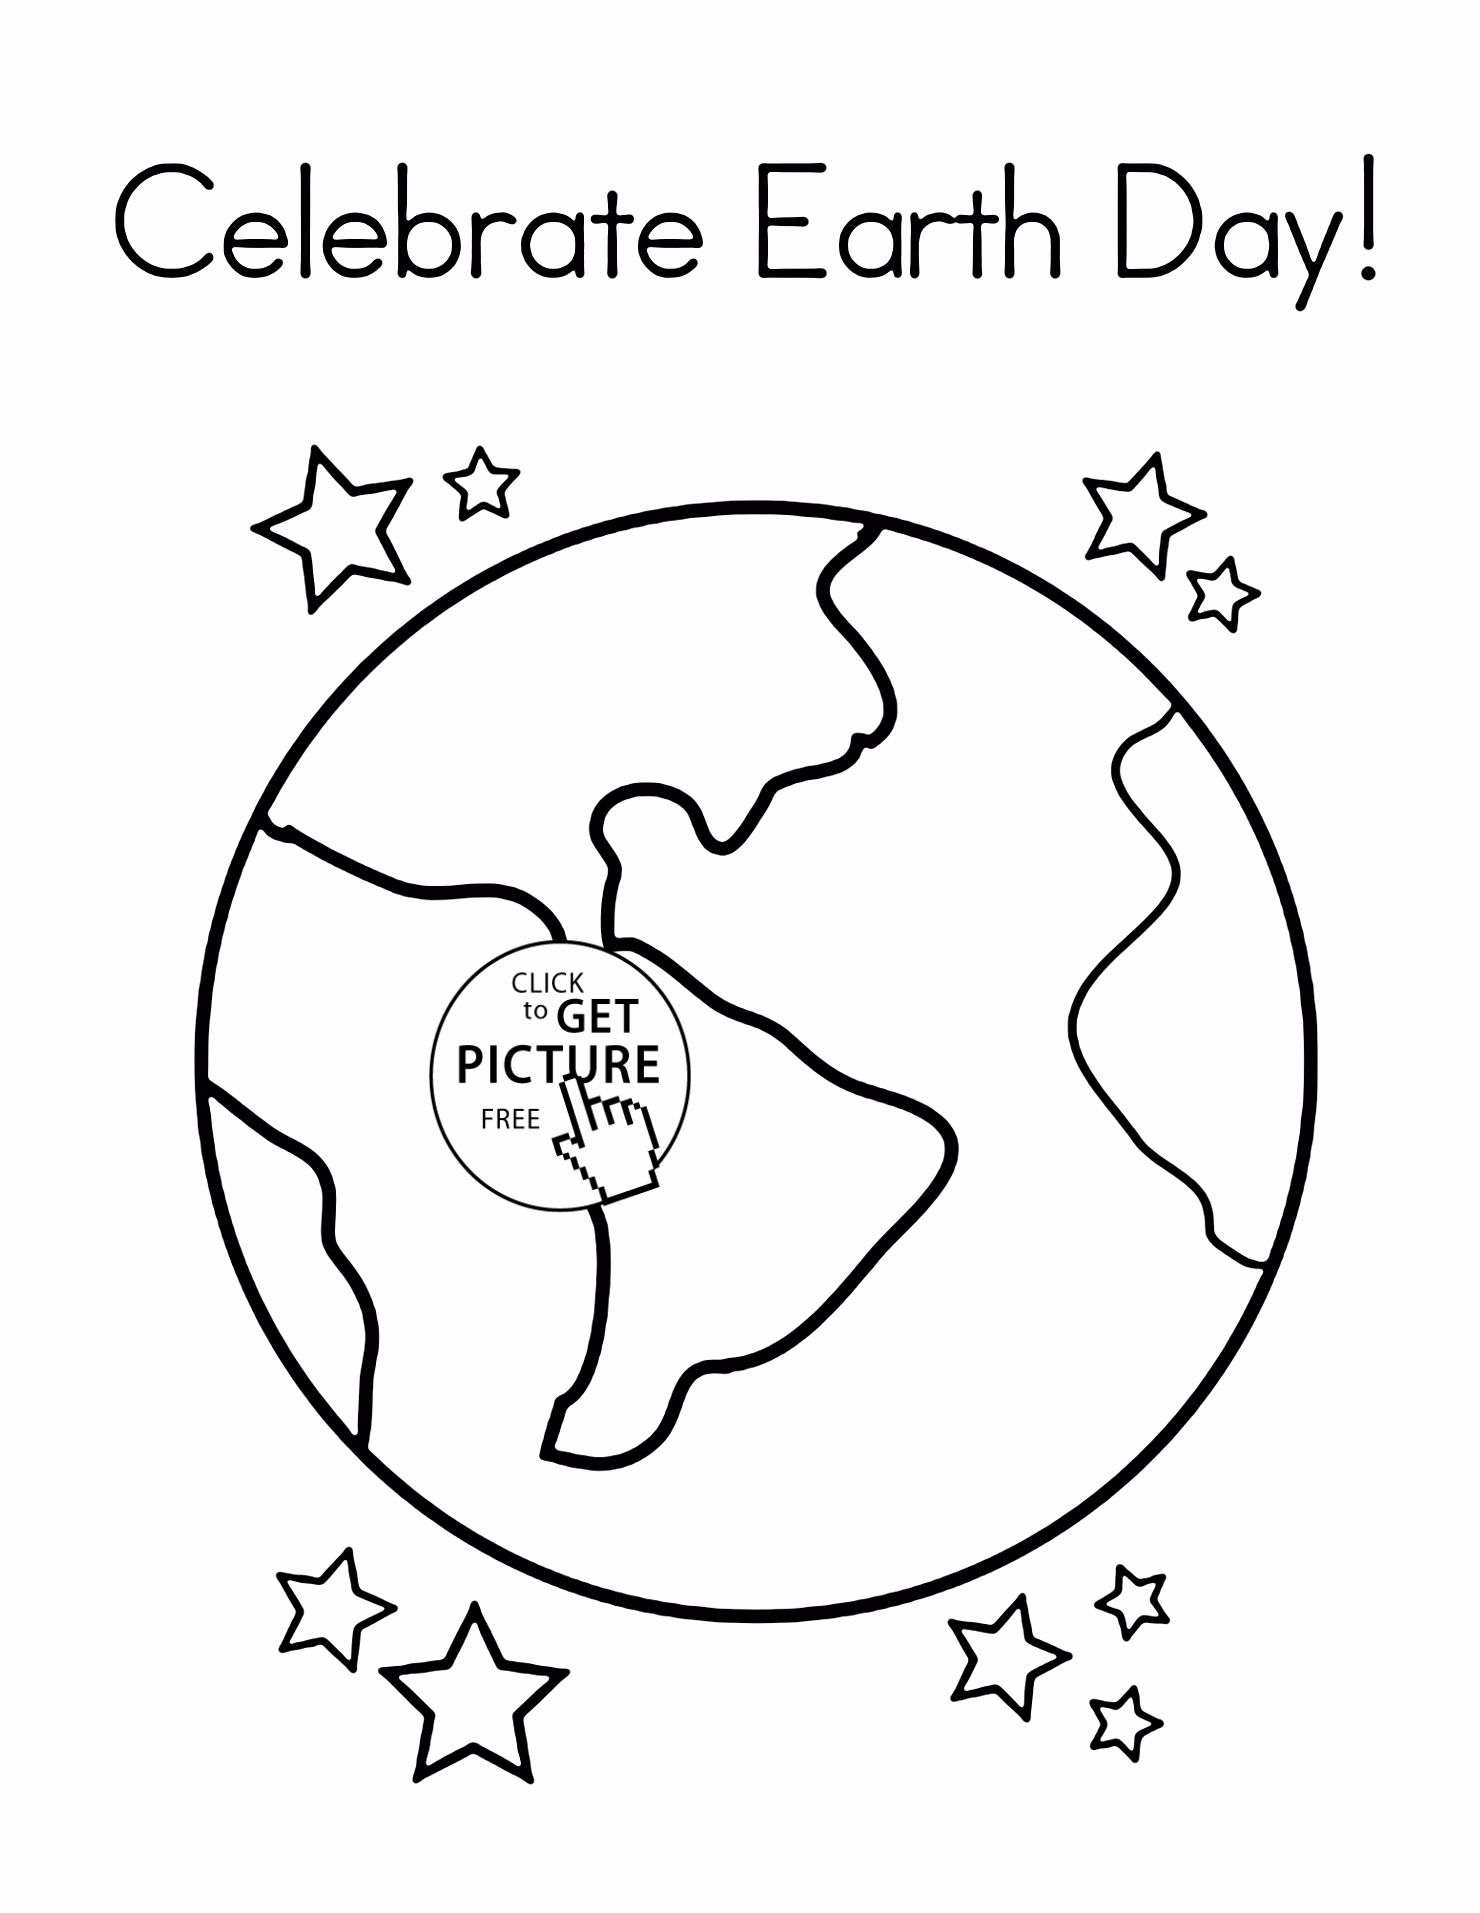 Planet Earth Coloring Page Awesome 31 Free Planet Coloring Pages Planets Coloring Page Earth Coloring Pages Solar System Coloring Pages Planet Coloring Pages